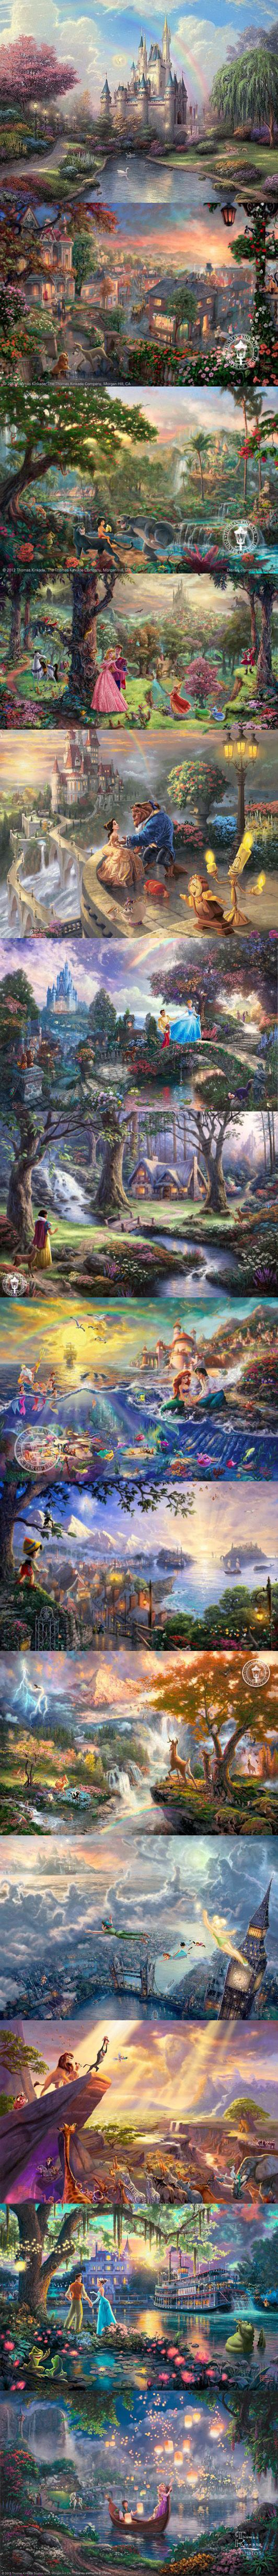 Love these! Thomas kinkade Disney paintings.